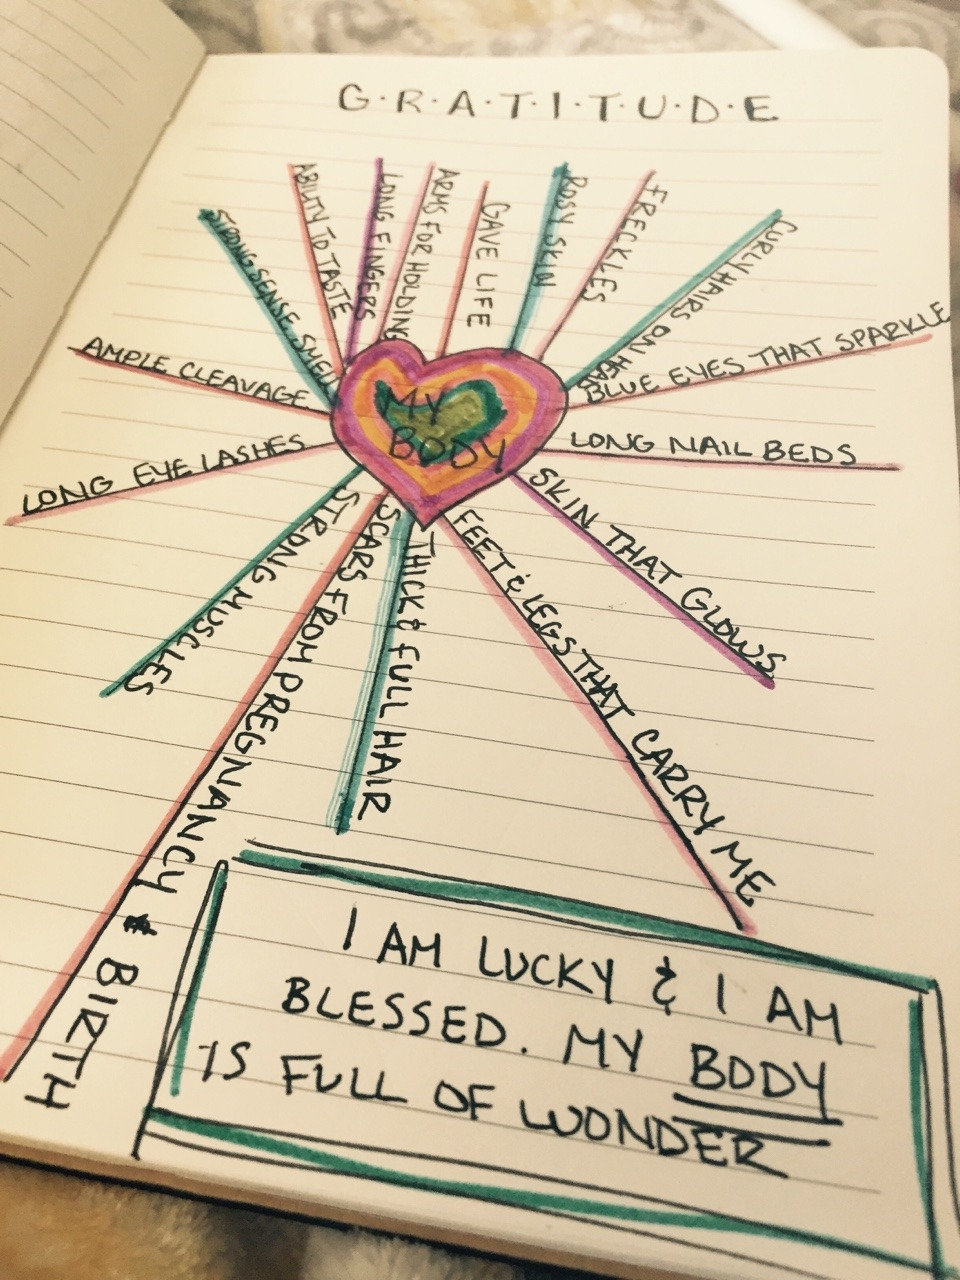 """wewomenbookclub :     Considering the life-long issue I've had with my body and self-image, I decided to spend my journal period, listing the things that I'm grateful for about MY BODY.     Admittedly, some of these came quickly but others I had to think about. """"Ample cleavage"""" was met with """"yeah but what about how they're too big and sagging, or the stretch marks…?"""", and """"gave life"""" was met with """"what about the five miscarriages you had…?""""     My point in telling you this is to demonstrate how important it is to power through the negative thoughts to find the beauty in it - to not focus on those harming thoughts about ourselves but reverse it and see the beauty in what our bodies are and can do. Because focusing on that really did help me love myself better….    The affirmation at the bottom is the affirmation for gratitude but I've tailored it to say """"body"""" instead of life. Focusing on what I love about my body helps me to silence what I don't.     And one day, hopefully one day soon, those voices won't be so loud anymore.   ❤️⭕️ - Mod Liz"""